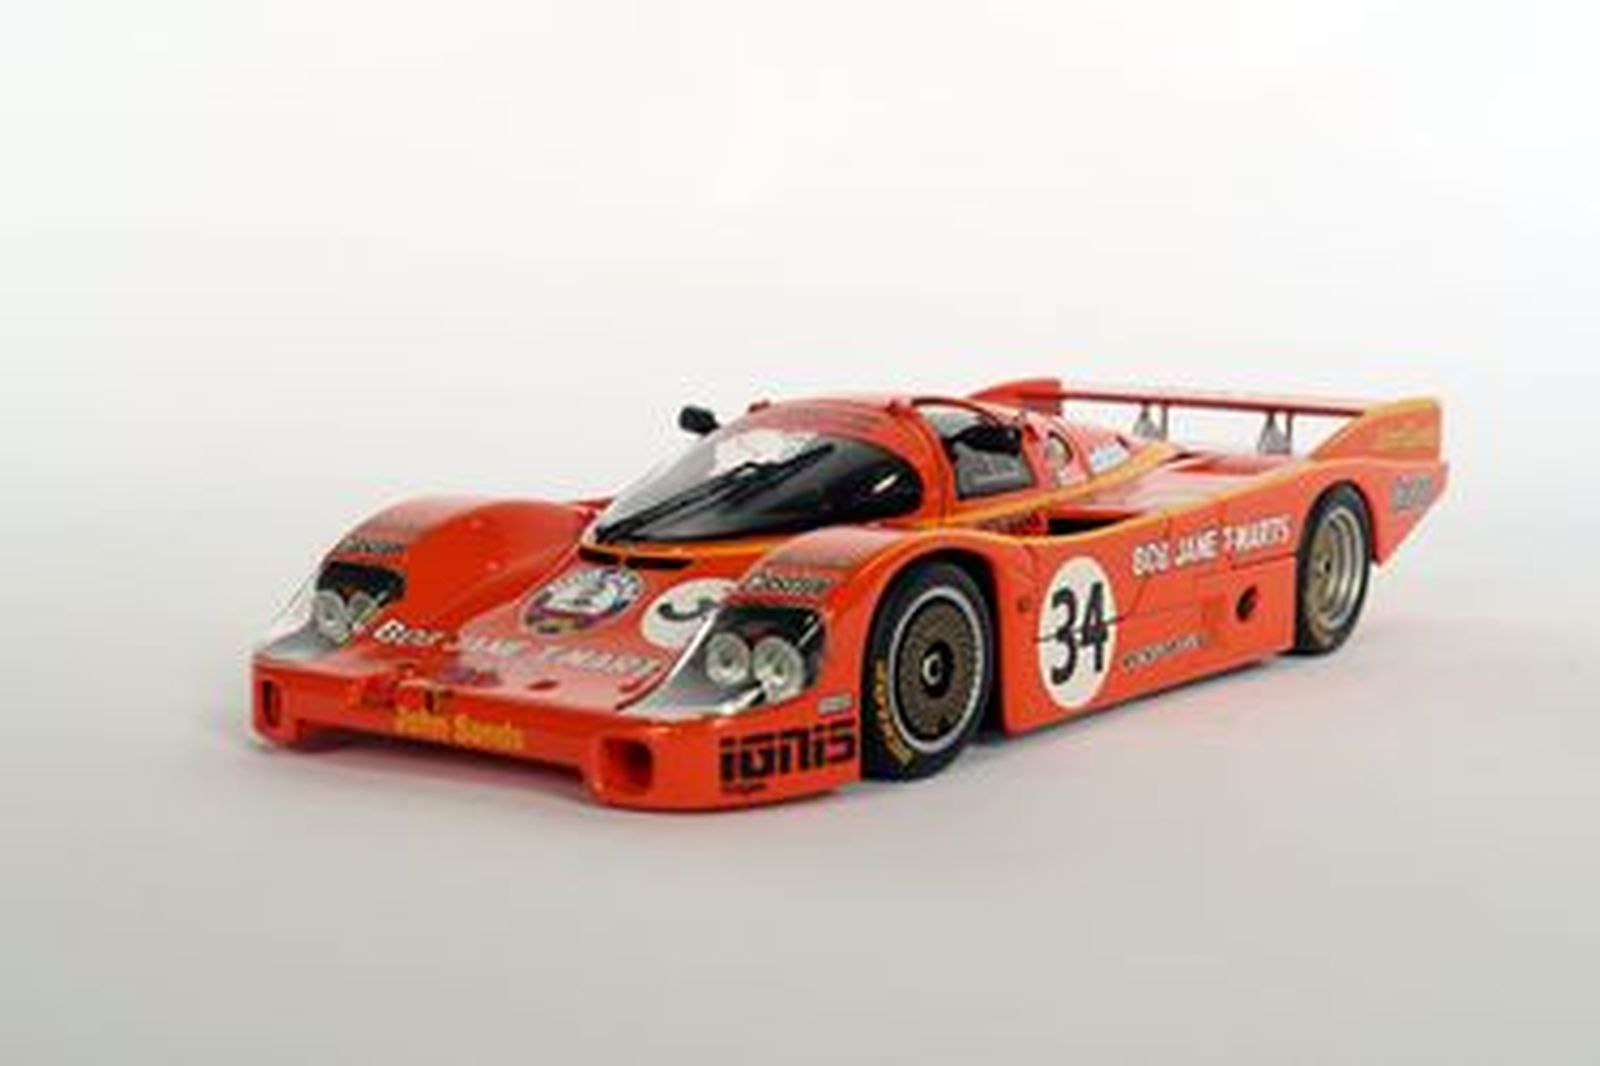 Model Car - Team Australia Porsche 956 in Bob Jane Livery by Biante (1:18 scale) and signed book